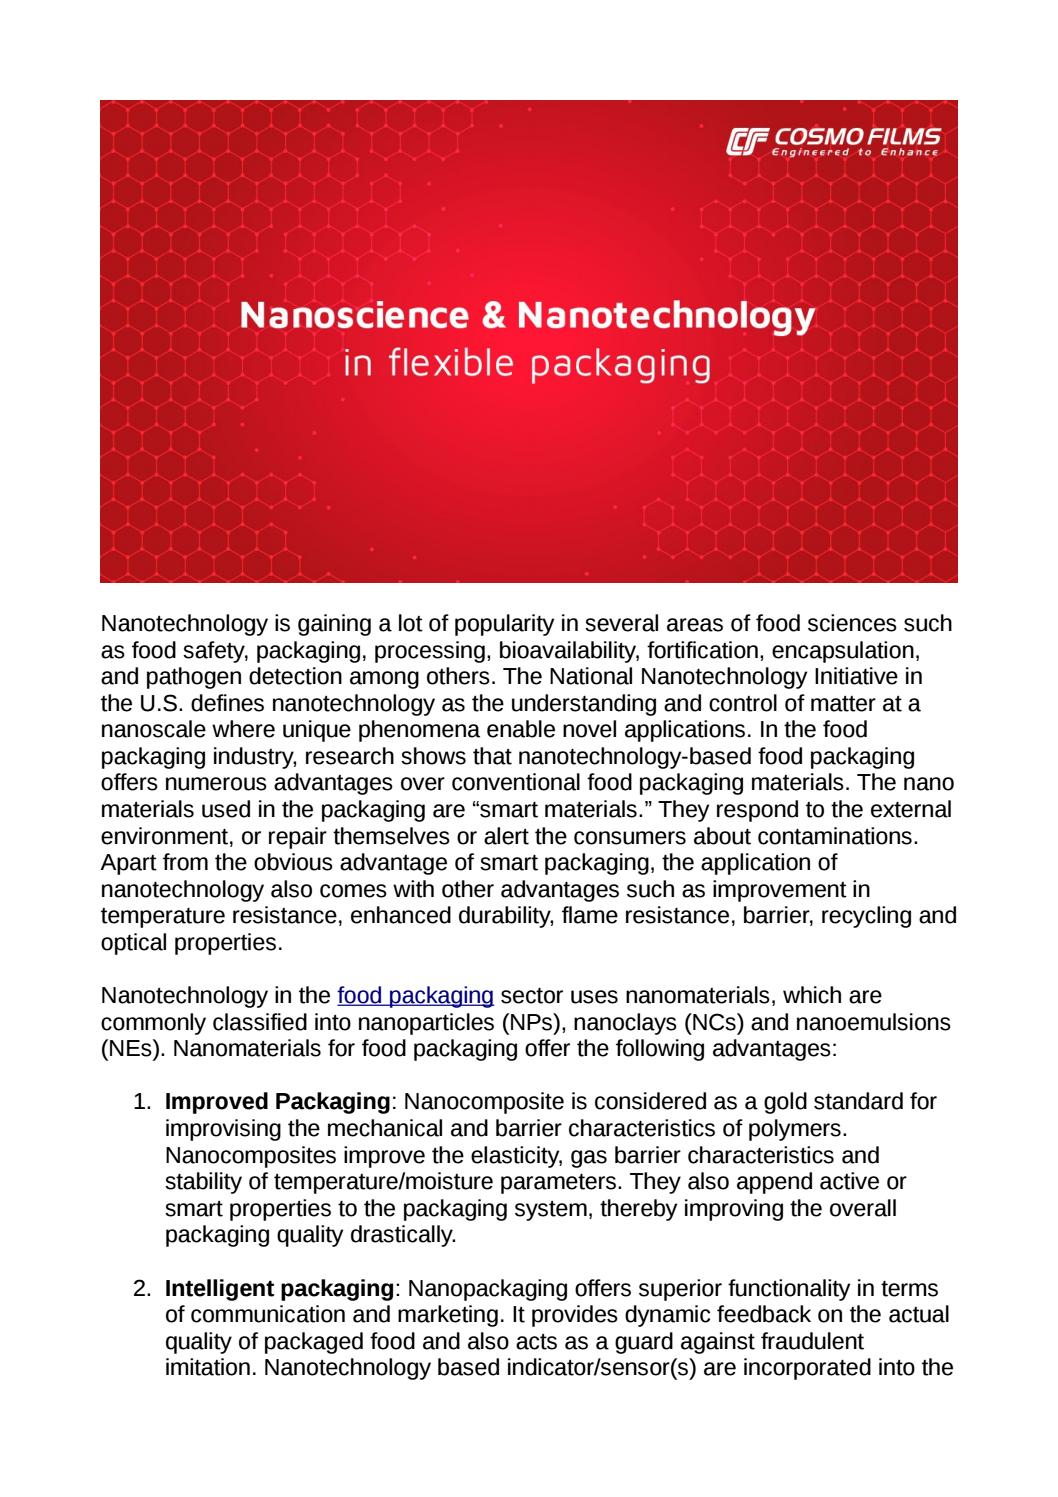 Nanoscience and Nanotechnology in Food Packaging Industry by